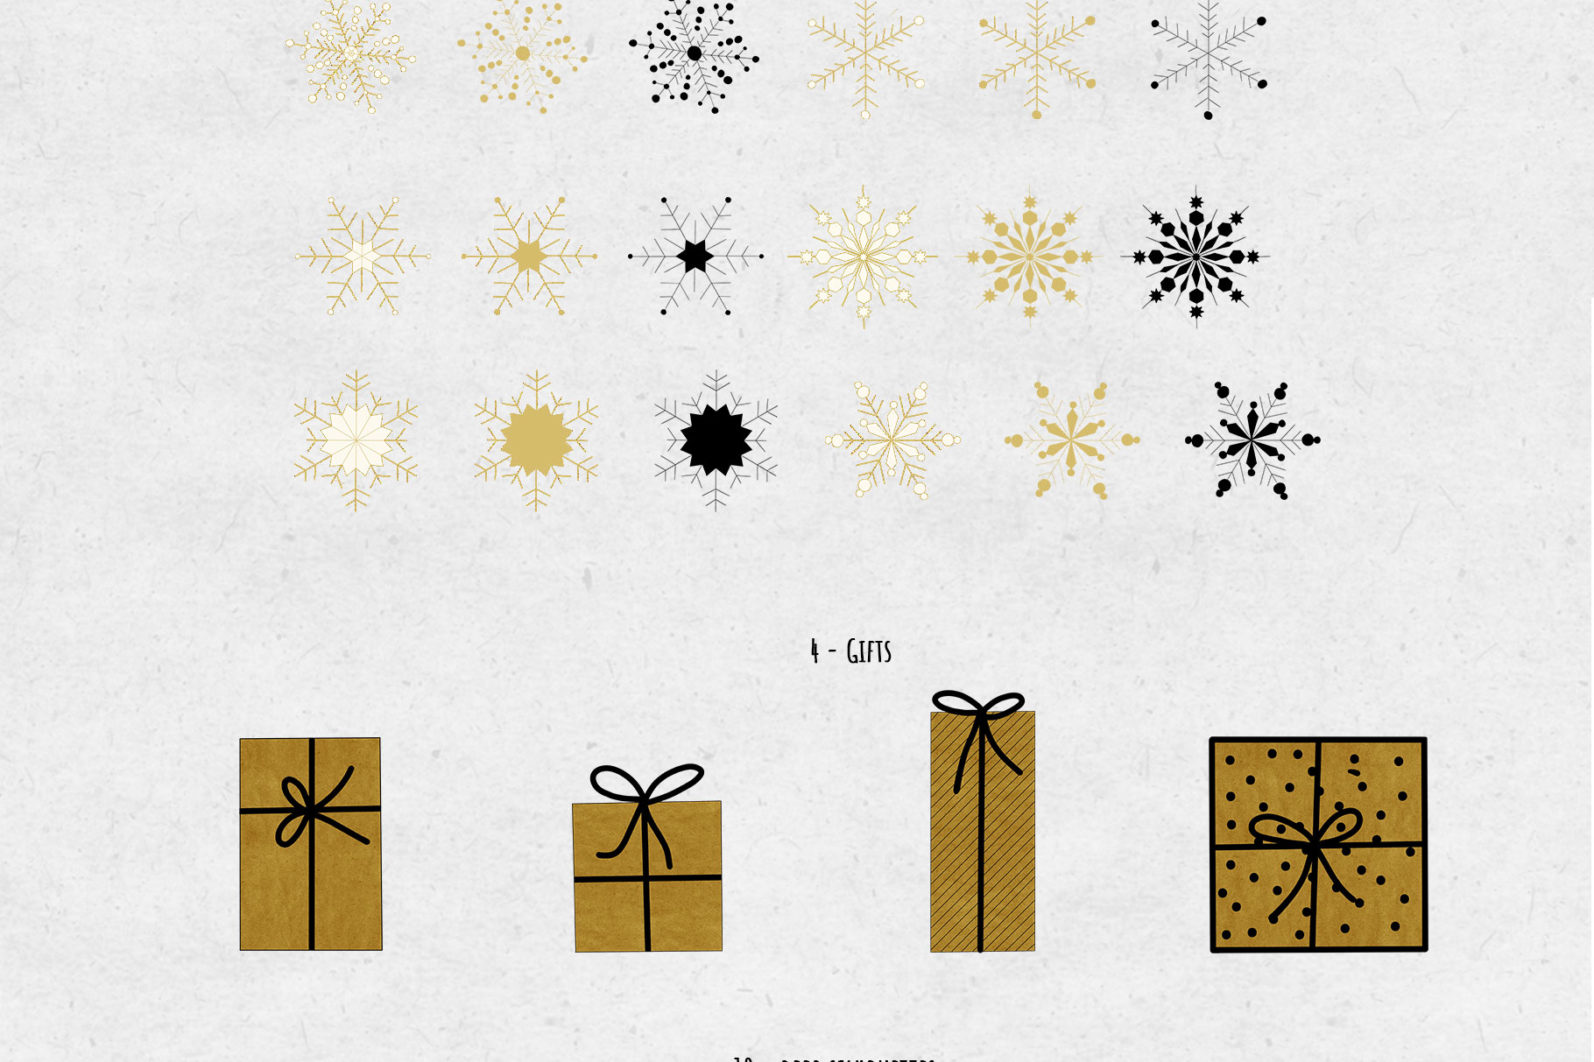 Black & Gold Christmas - chirstmas black gold elements page -